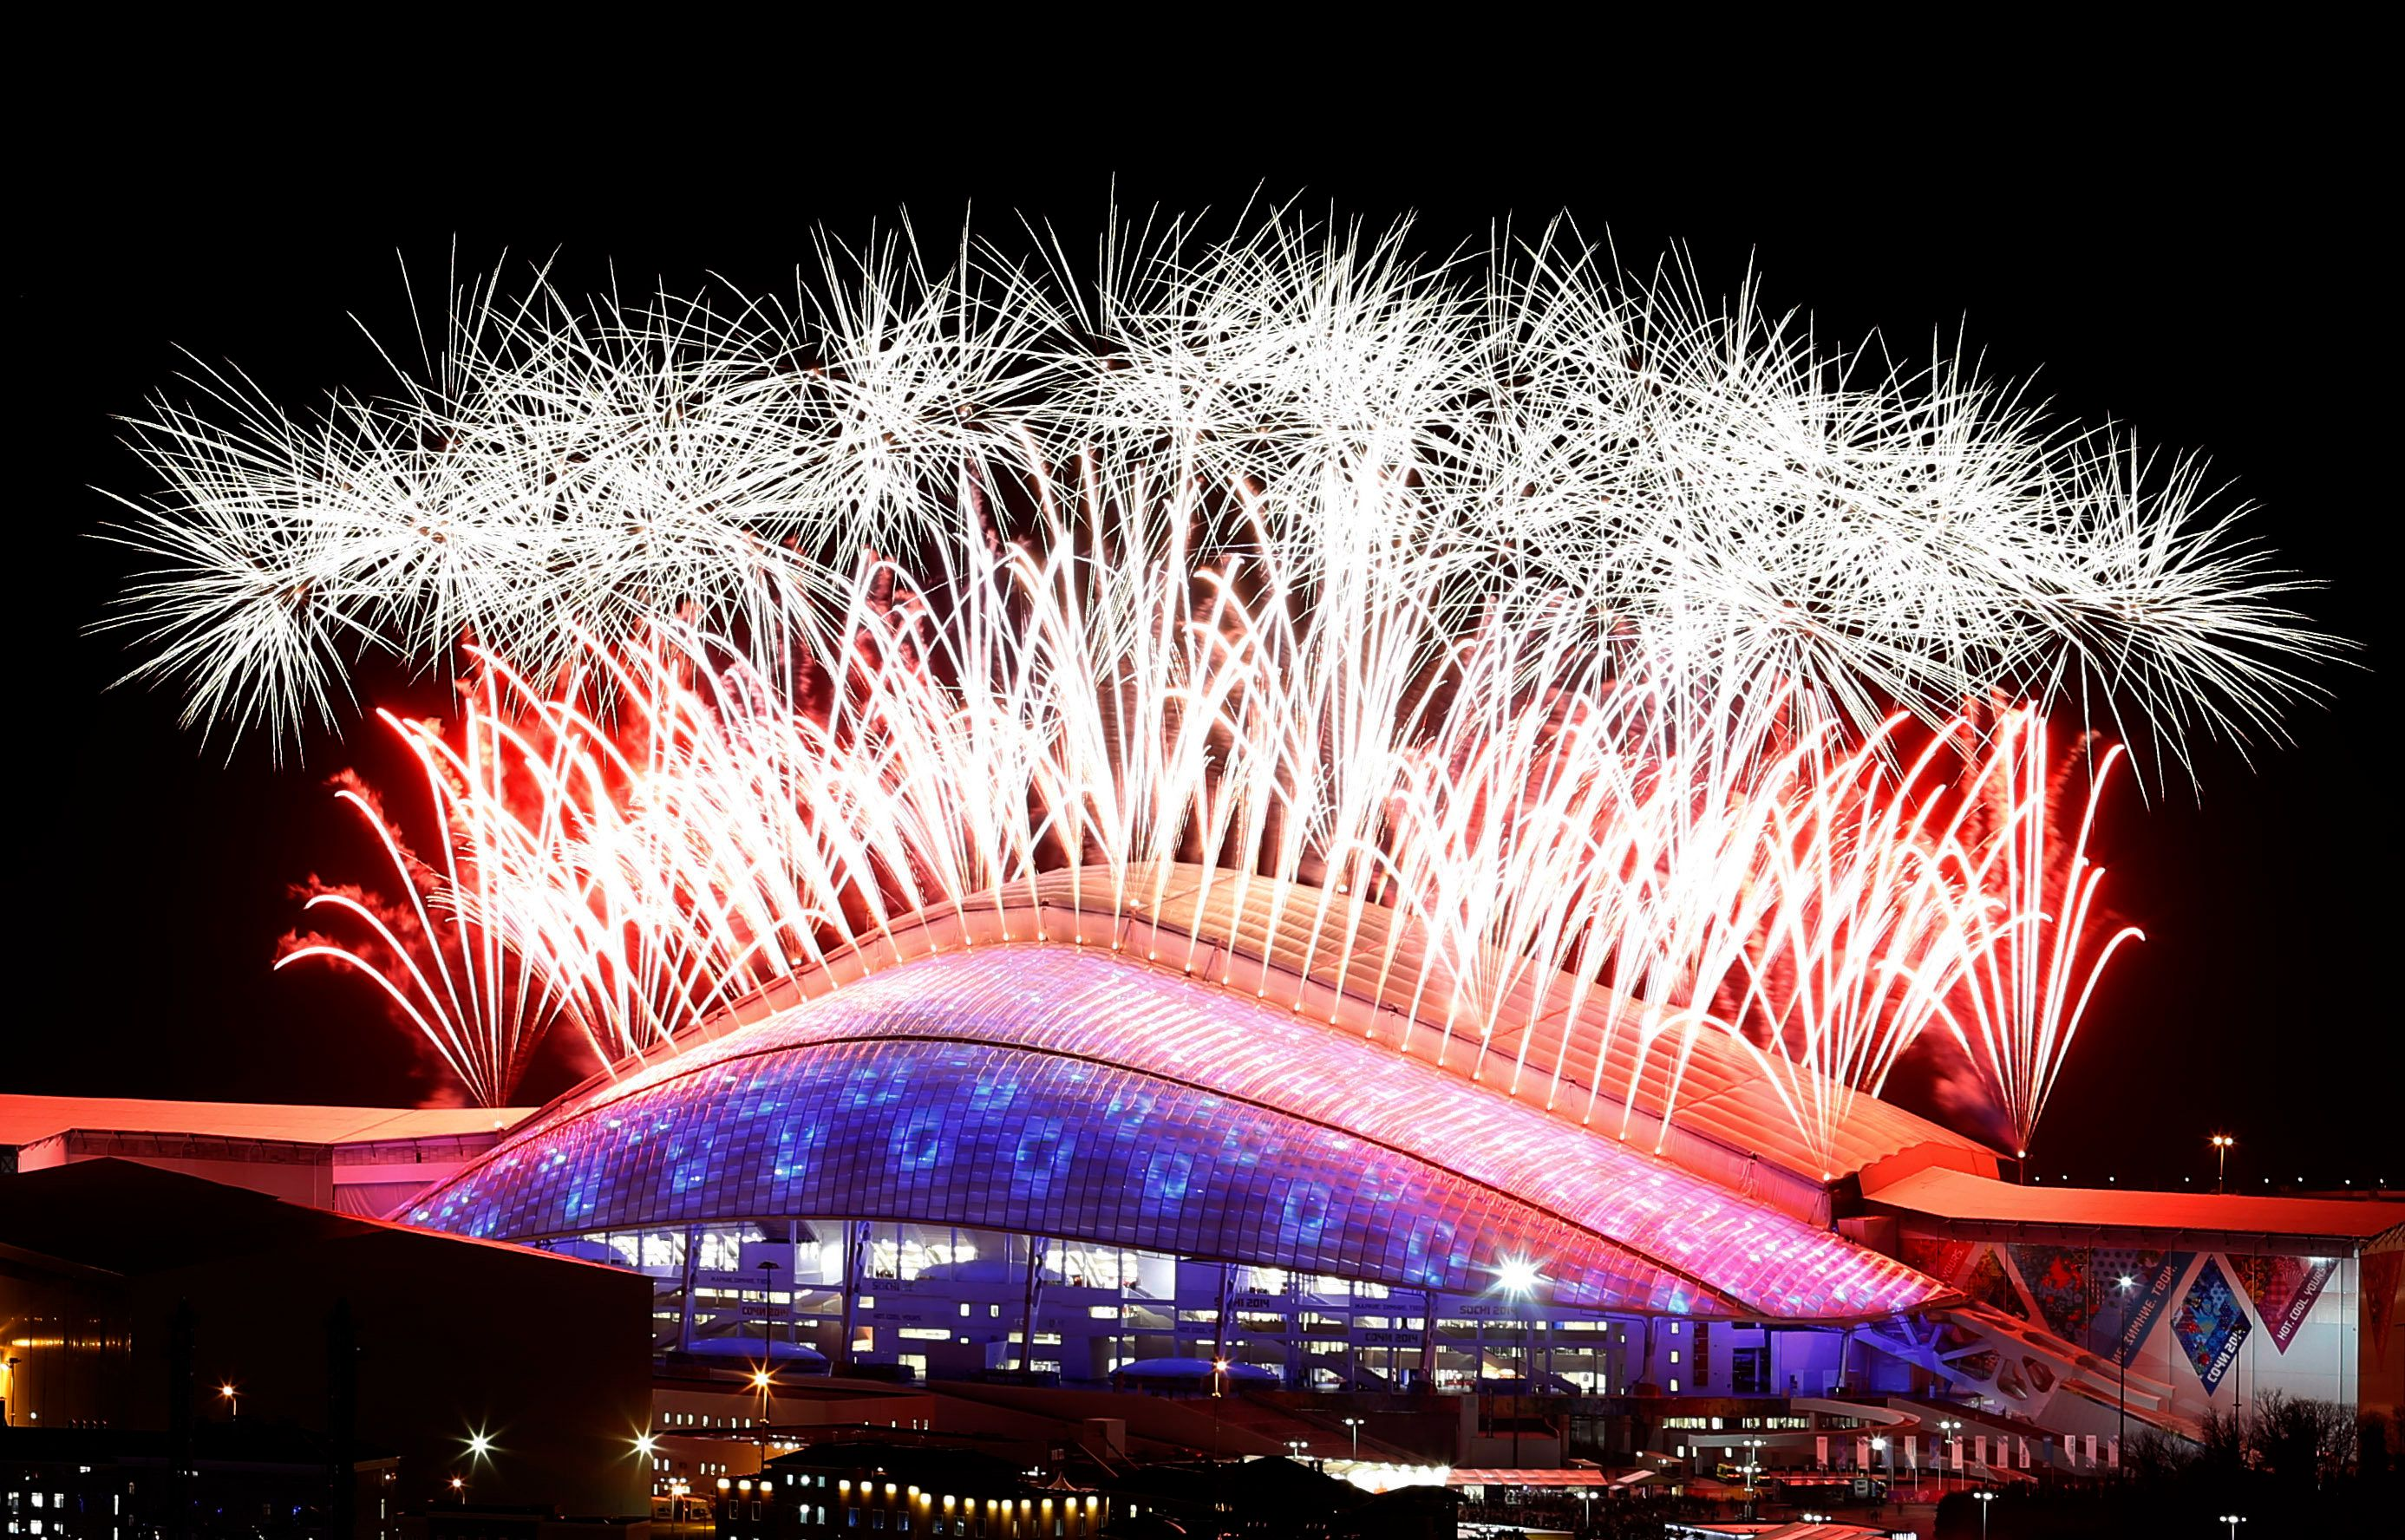 Fireworks explode over the Fisht Olympic Stadium during the closing ceremony for the 2014 Sochi Winter Olympics, February 23, 2014.   REUTERS/Alexander Demianchuk (RUSSIA  - Tags: OLYMPICS SPORT TPX IMAGES OF THE DAY)